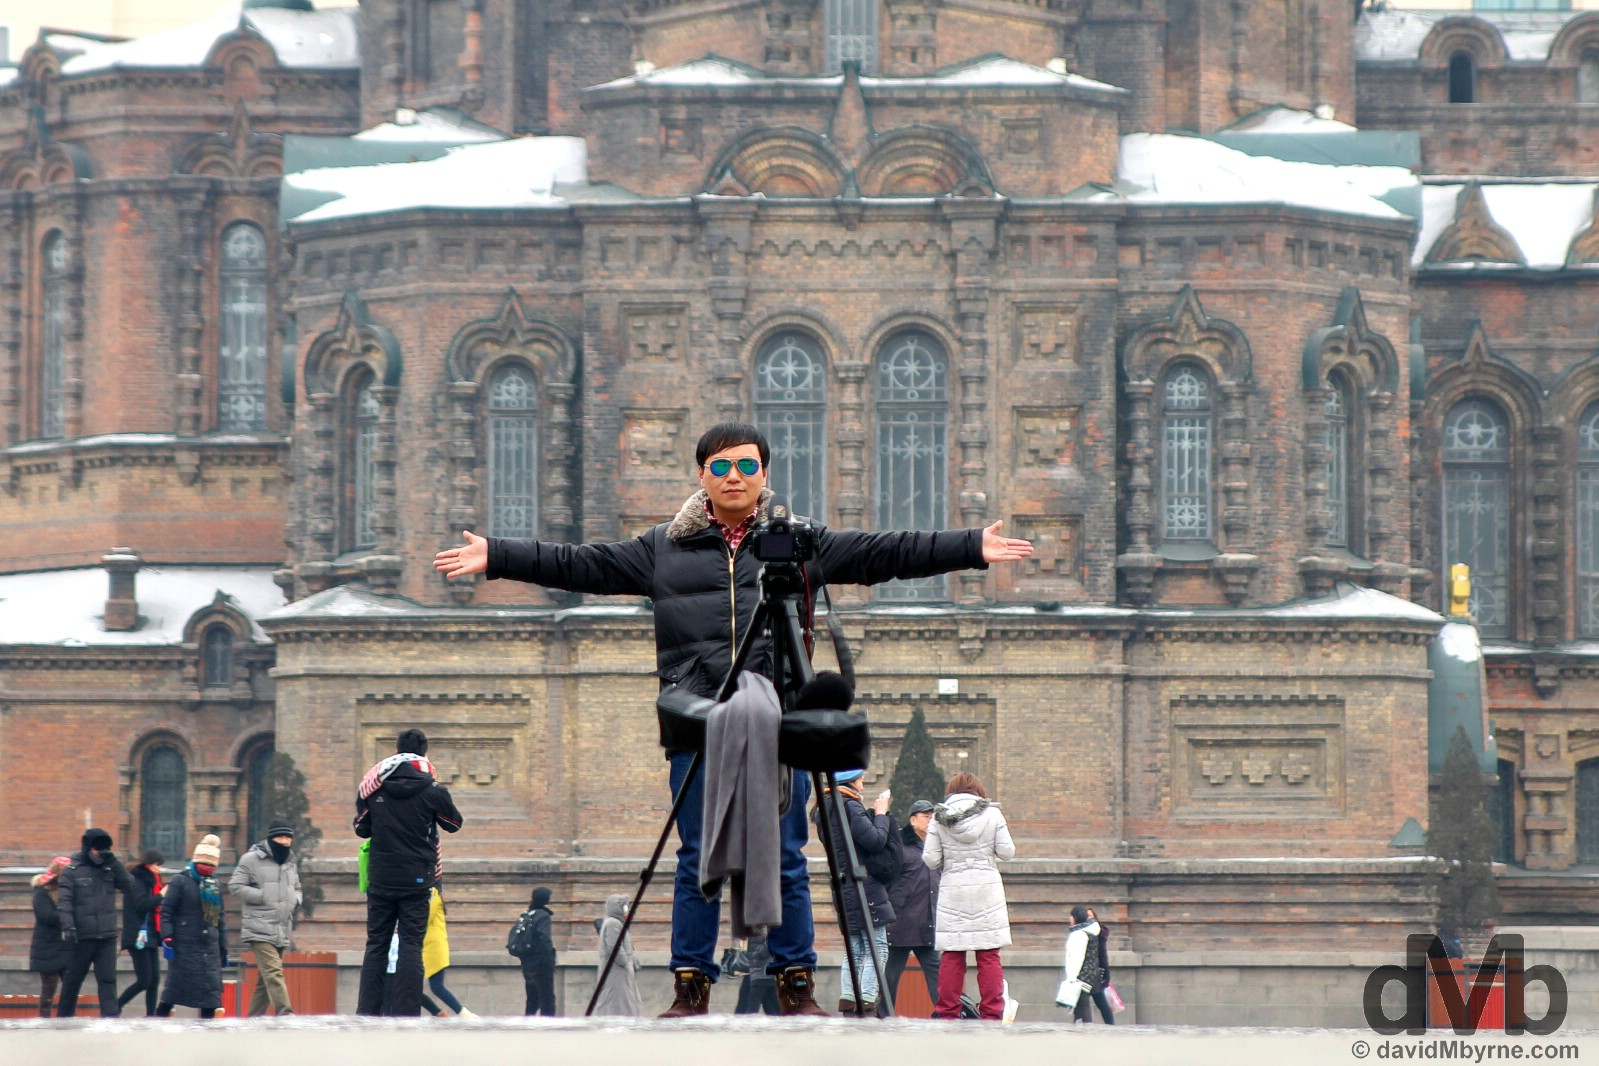 Selfie time in front of the Cathedral of the Holy Wisdom of God, a.k.a. the Russian Orthodox cathedral or formally St. Sofia's, in Harbin, China. February 6, 2015.